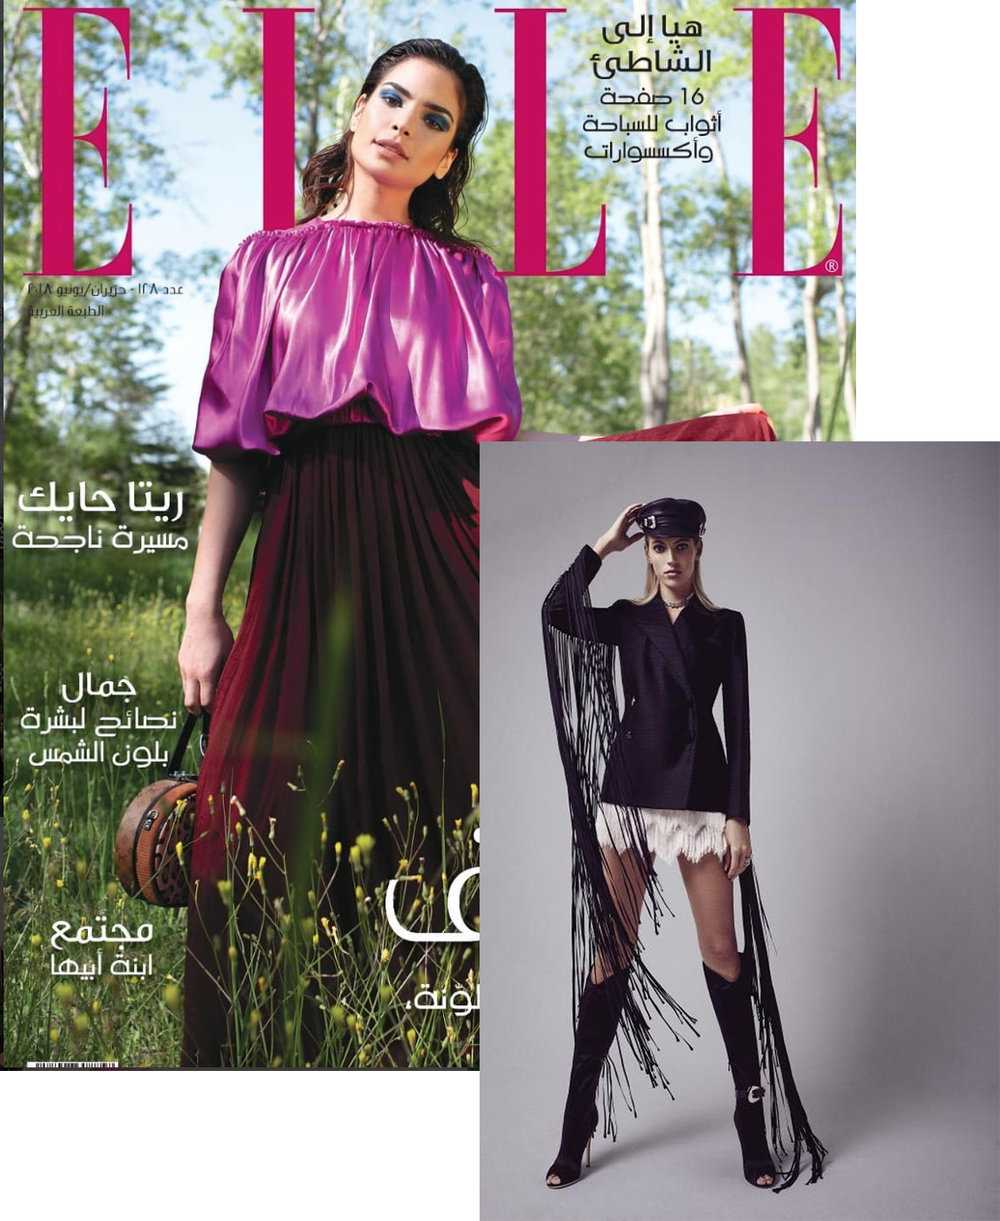 Elle Arabia Editorial